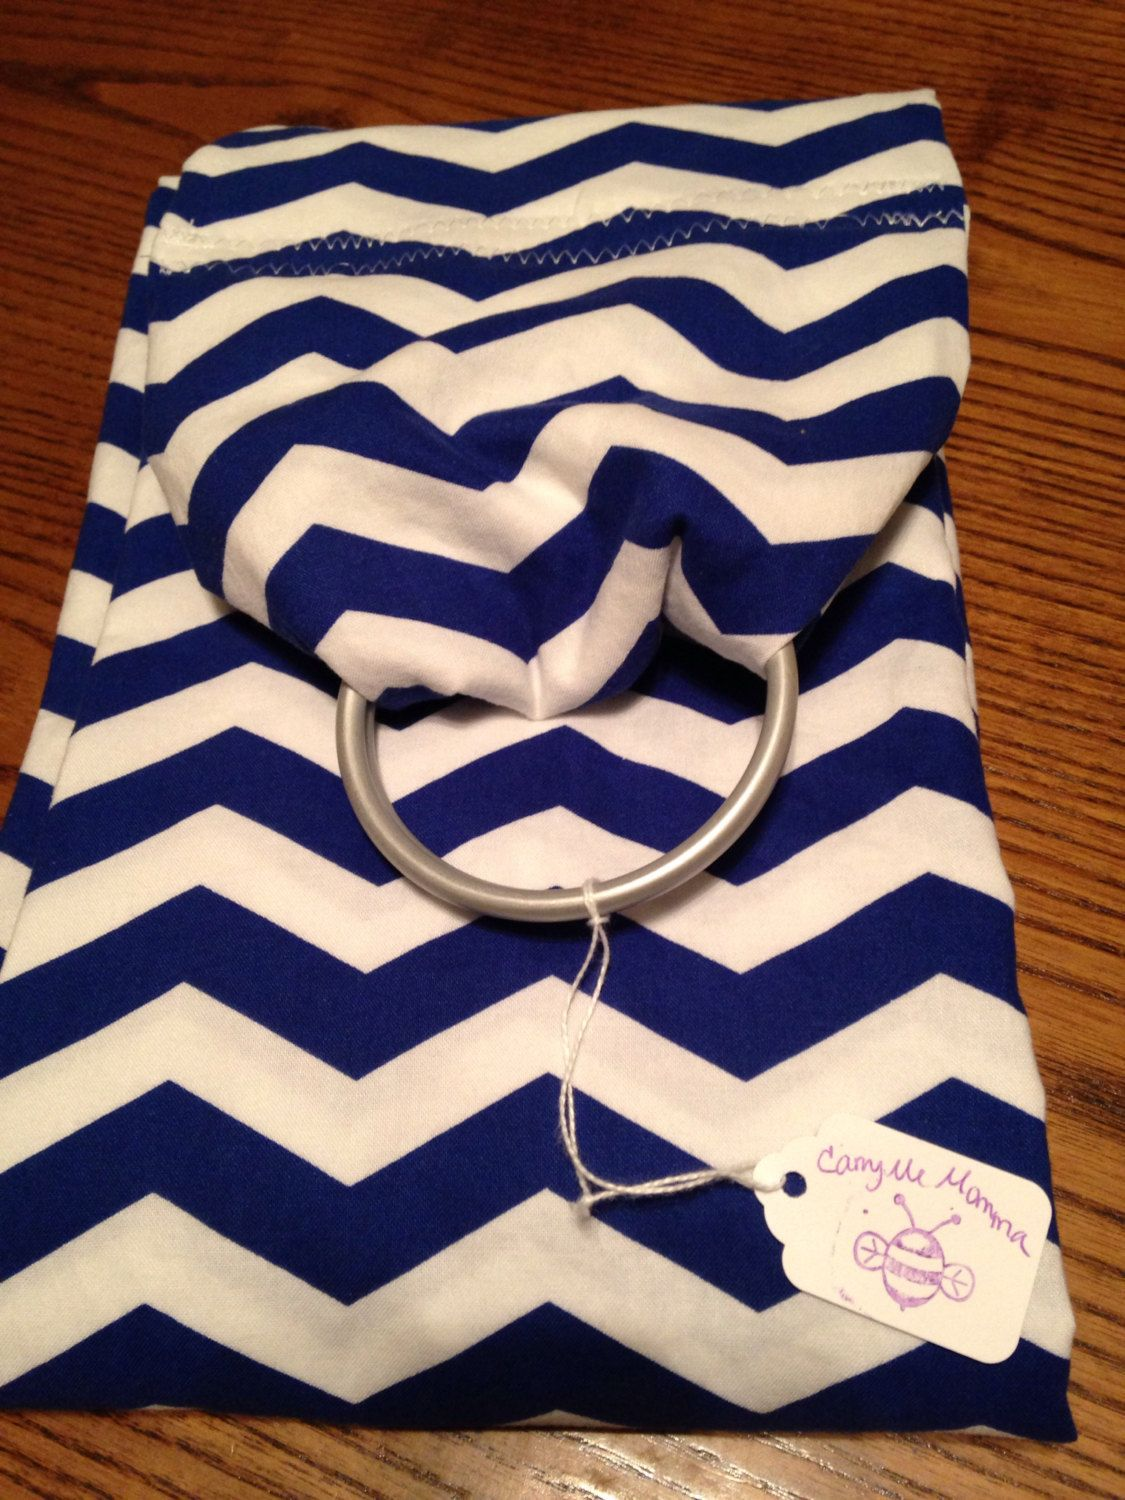 24becbdda48 Blue and white ring sling for your pet. Up to 30 lbs! Large pocket ...